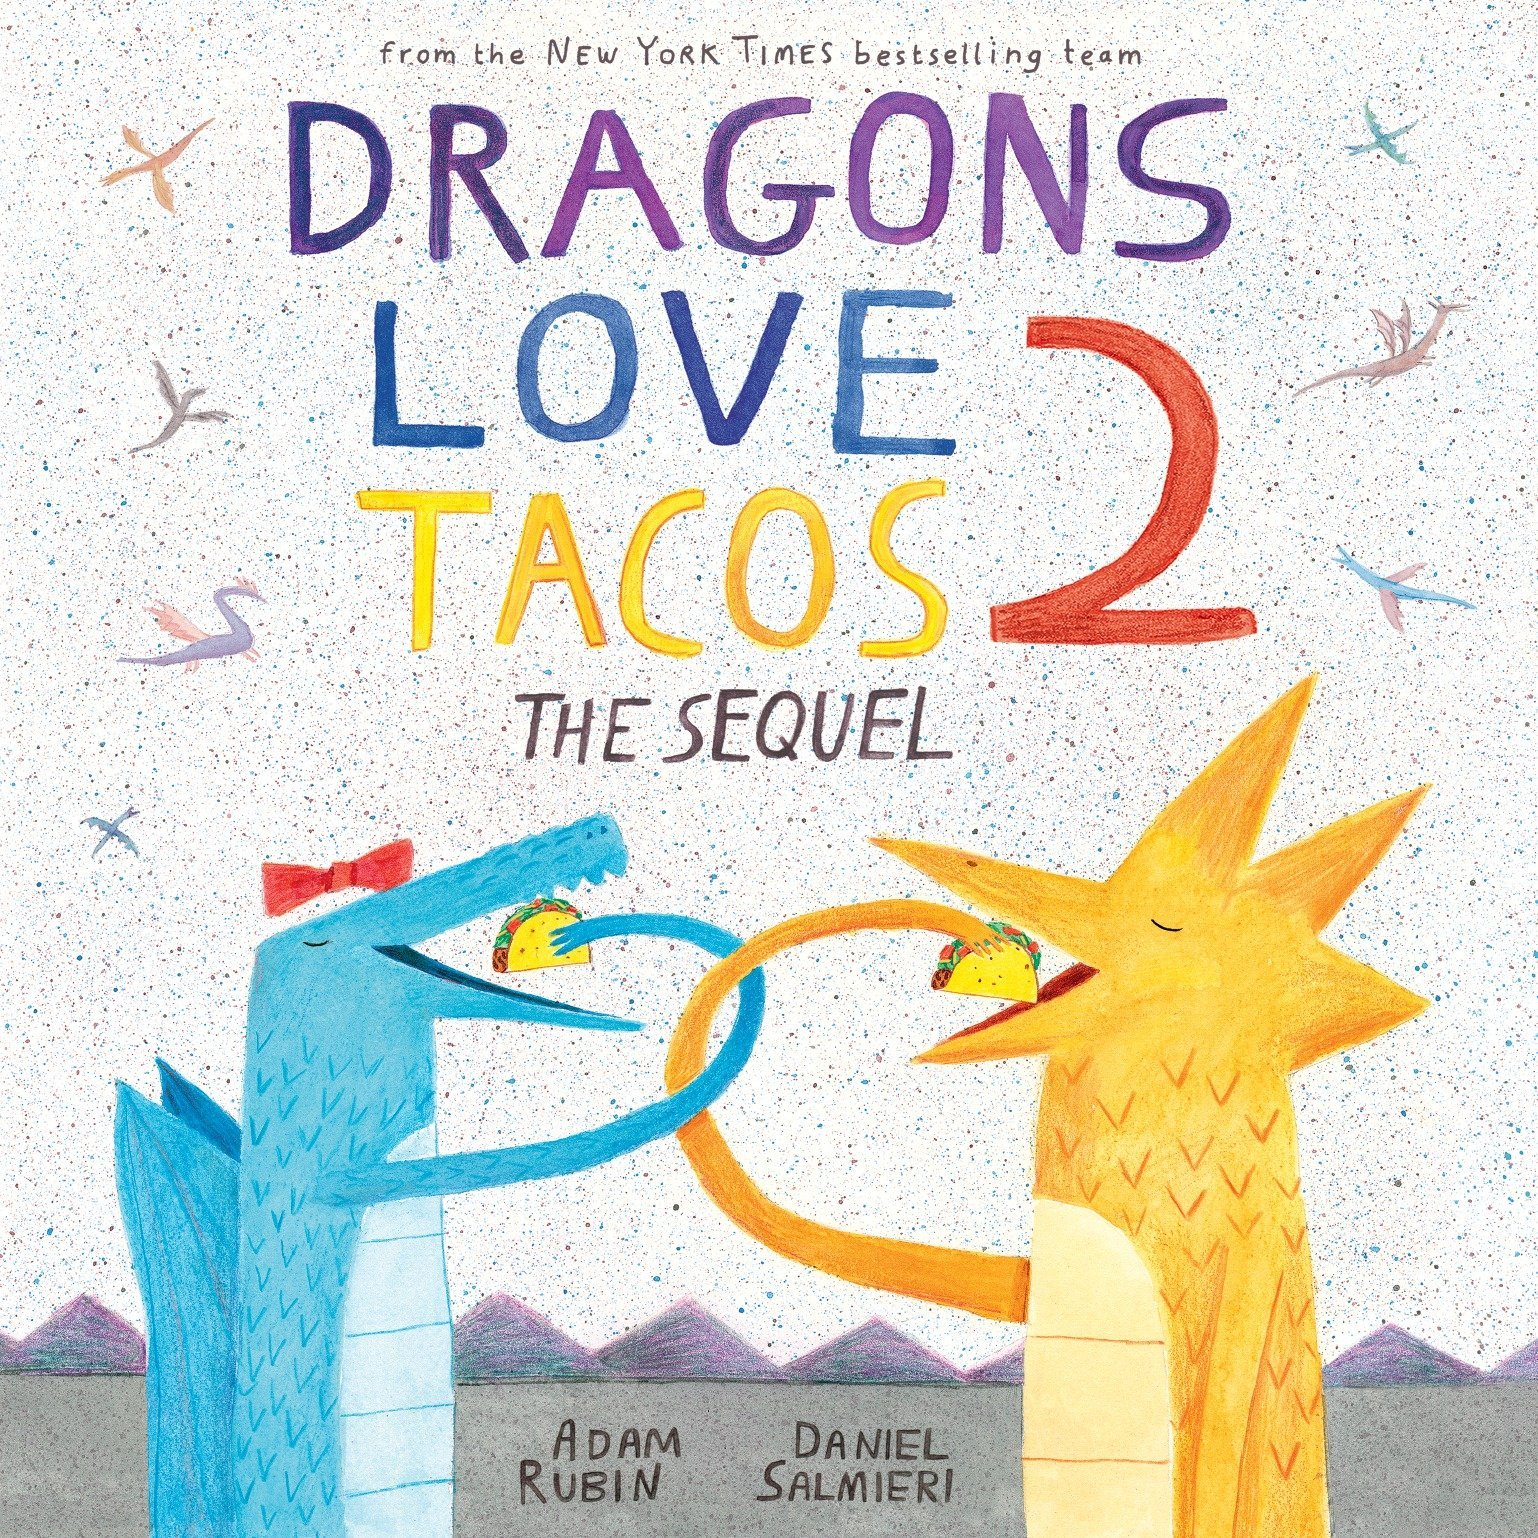 Dragons Love Tacos 2 The Sequel by Adam Rubin.jpg